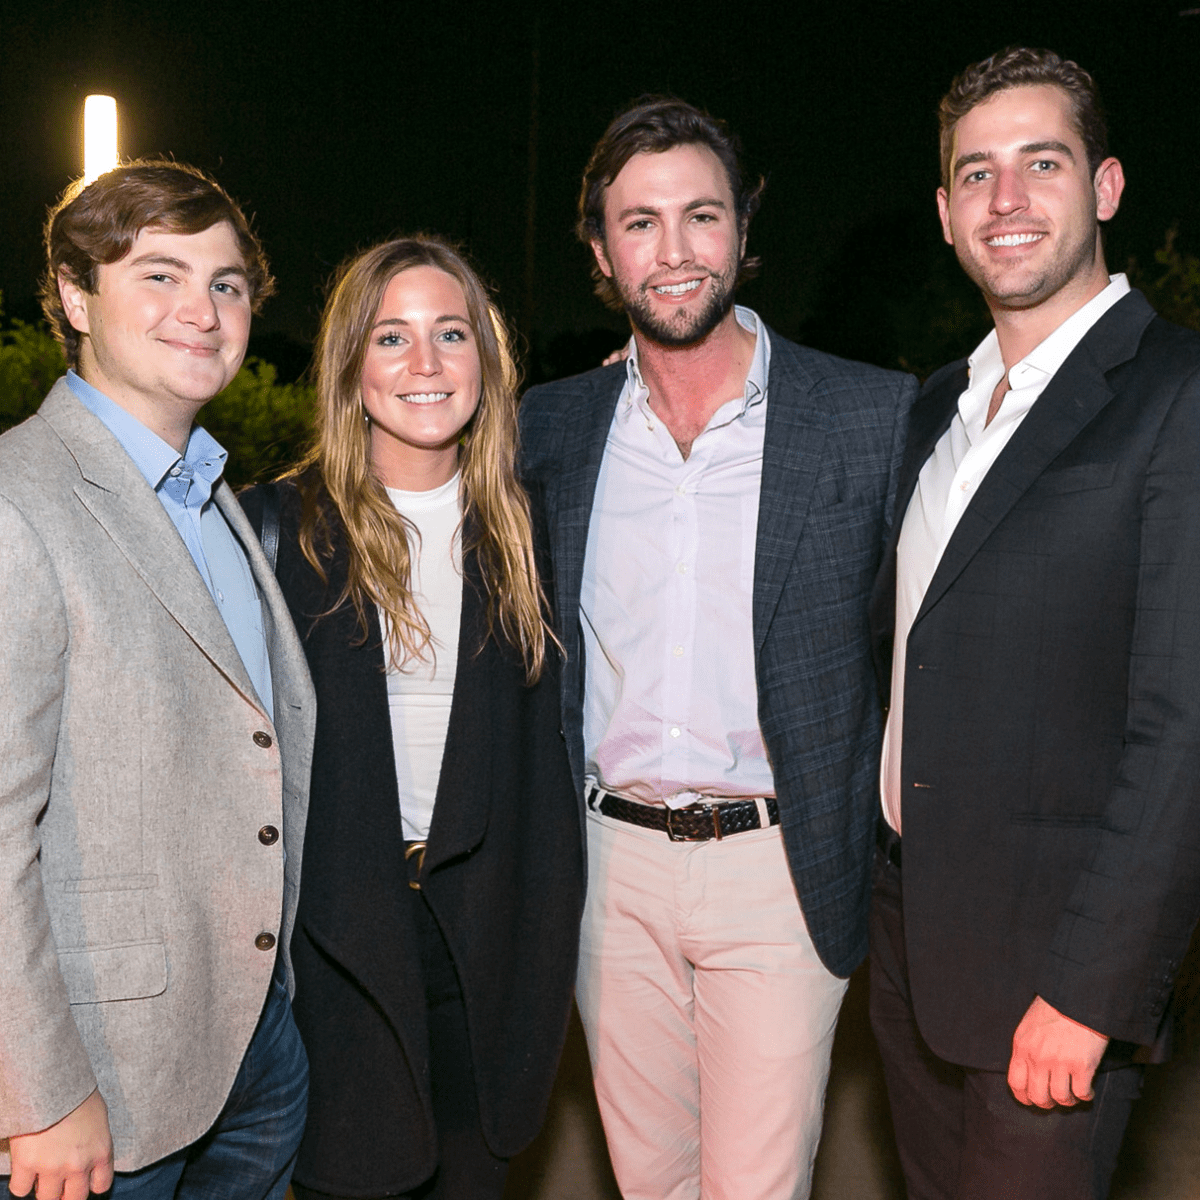 Houston, Memorial Park Bridge Bash, November 2017, Lloyd Rude, Meaghan Dawson, Matt Vandever, Chase Chambers